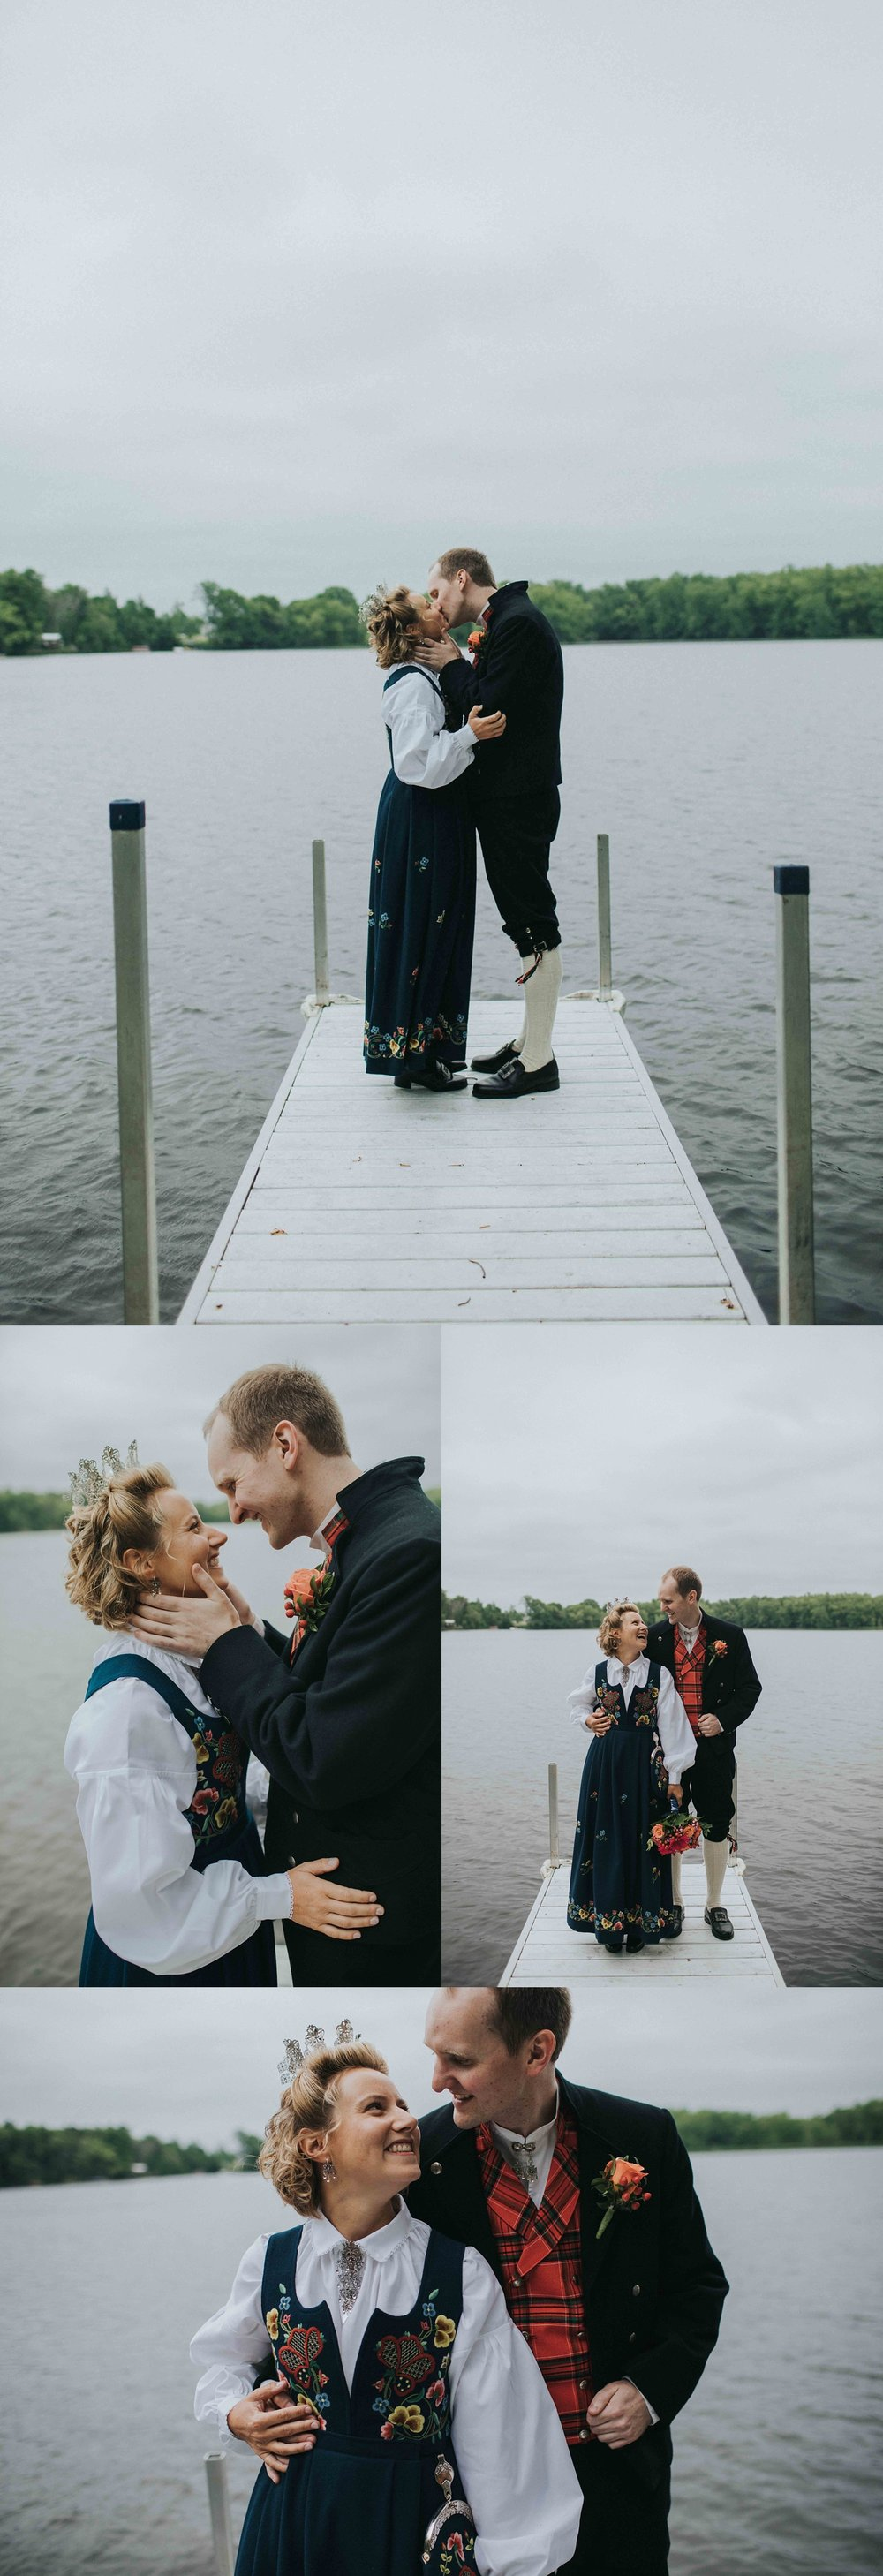 Norwegian Wedding Stevens Point Wisconsin Wedding Photographer Chloe Ann Photography_0007.jpg